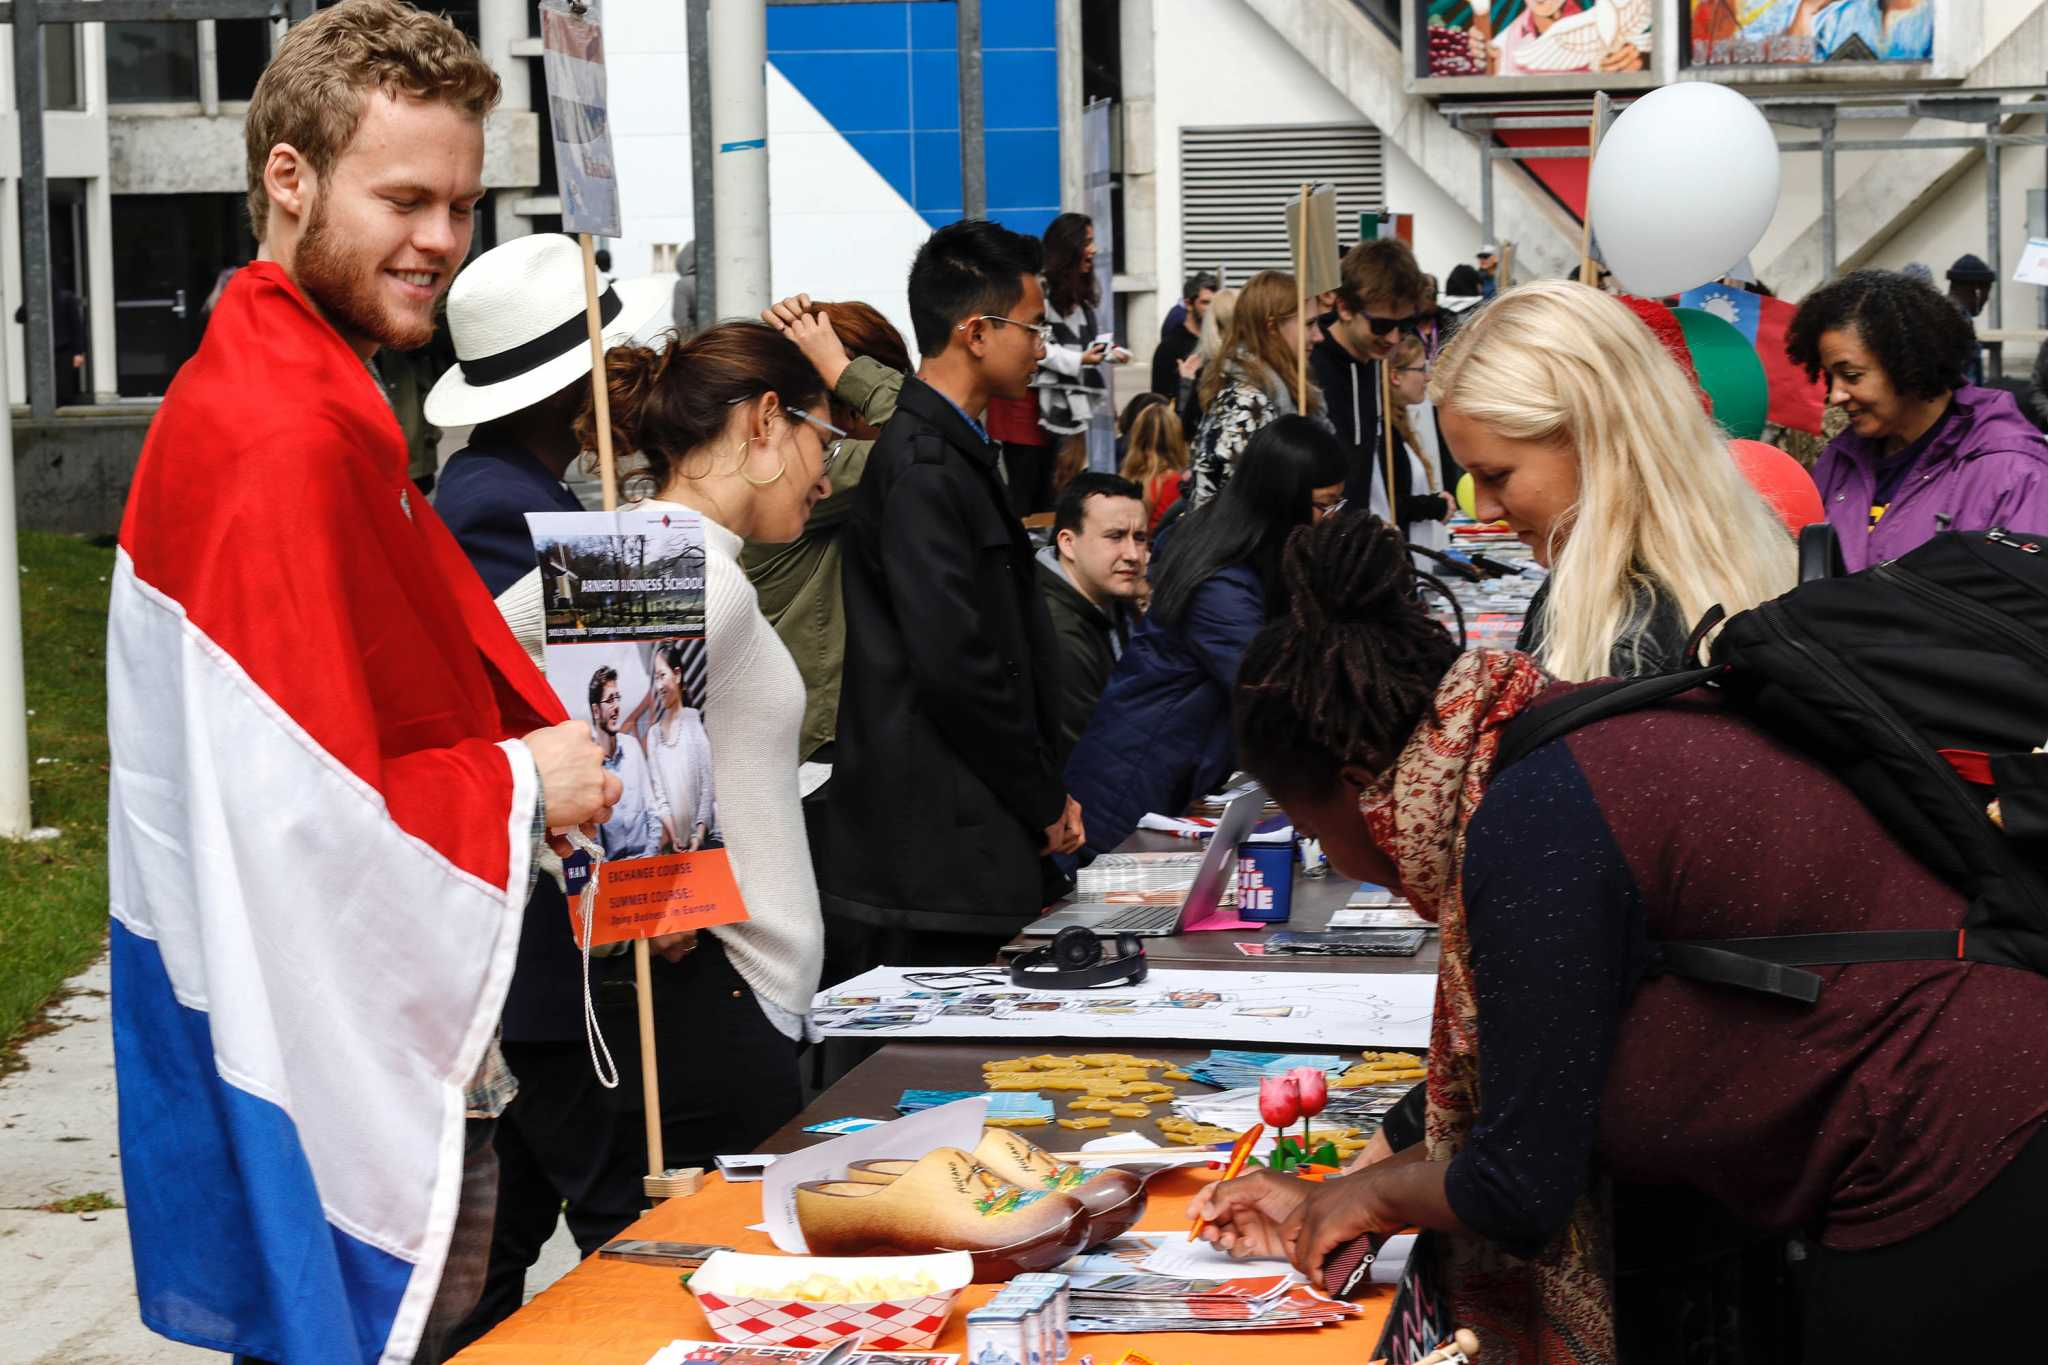 Exchange student and artificial intelligence major Sierk Kanis, 23, talks with two students about the Netherlands at the Study Abroad event held in the quad outside Cesar Chavez Center at SF State on April 12, 2017, in San Francisco, Calif. (Mason Rockfellow/Xpress)